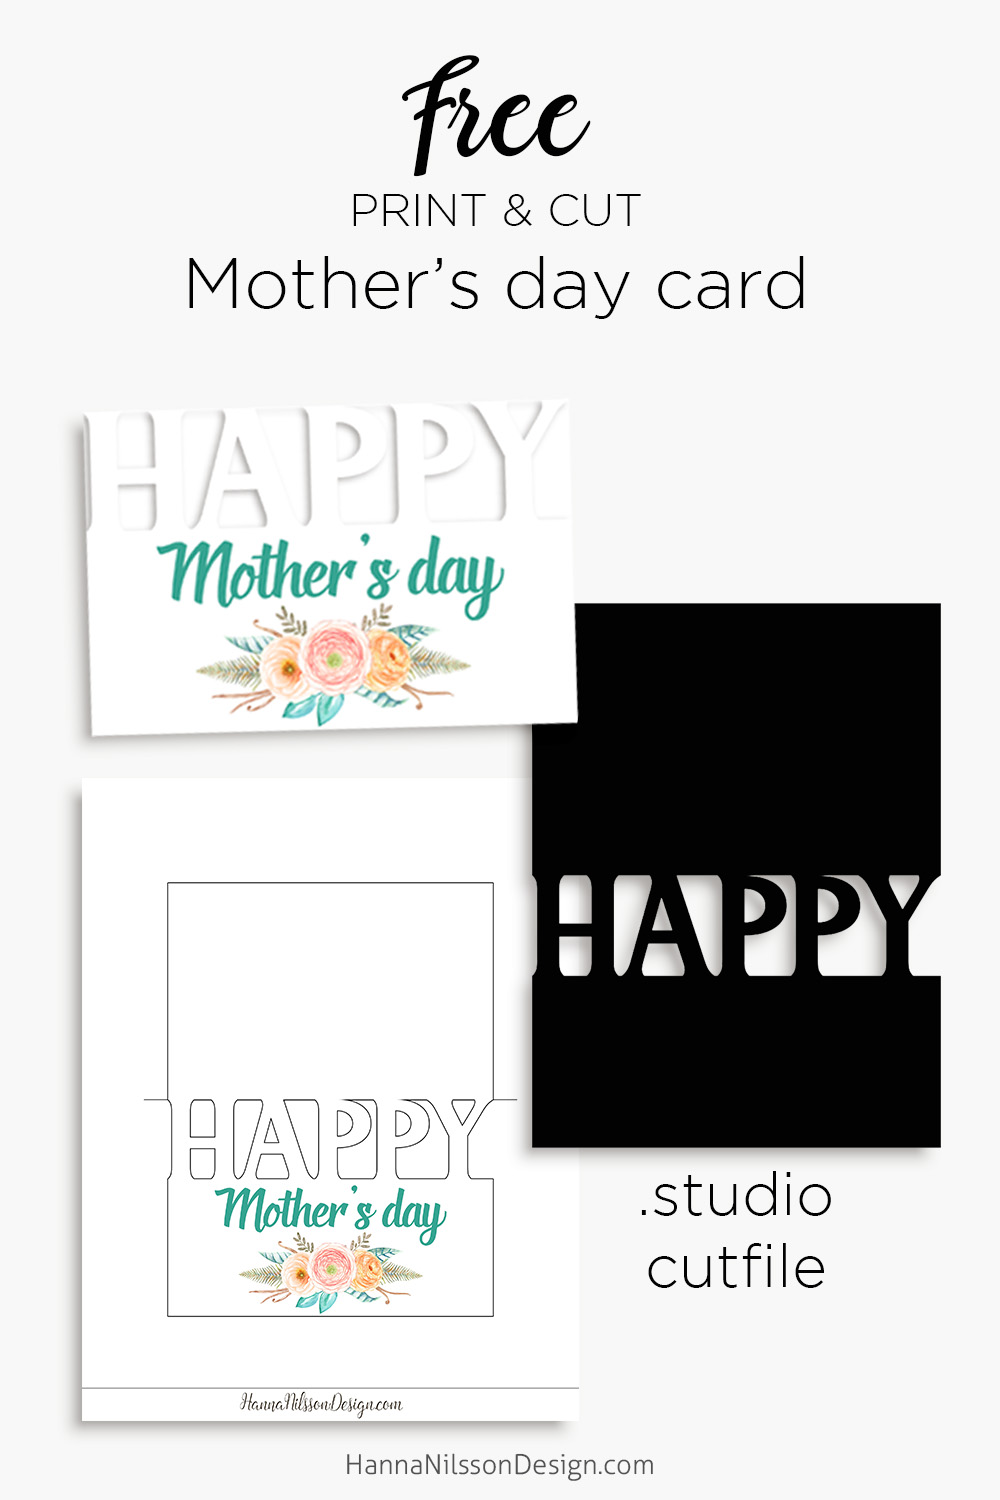 photograph regarding Happy Mothers Day Printable Cards titled Joyful Moms working day Printable playing cards and tags towards rejoice